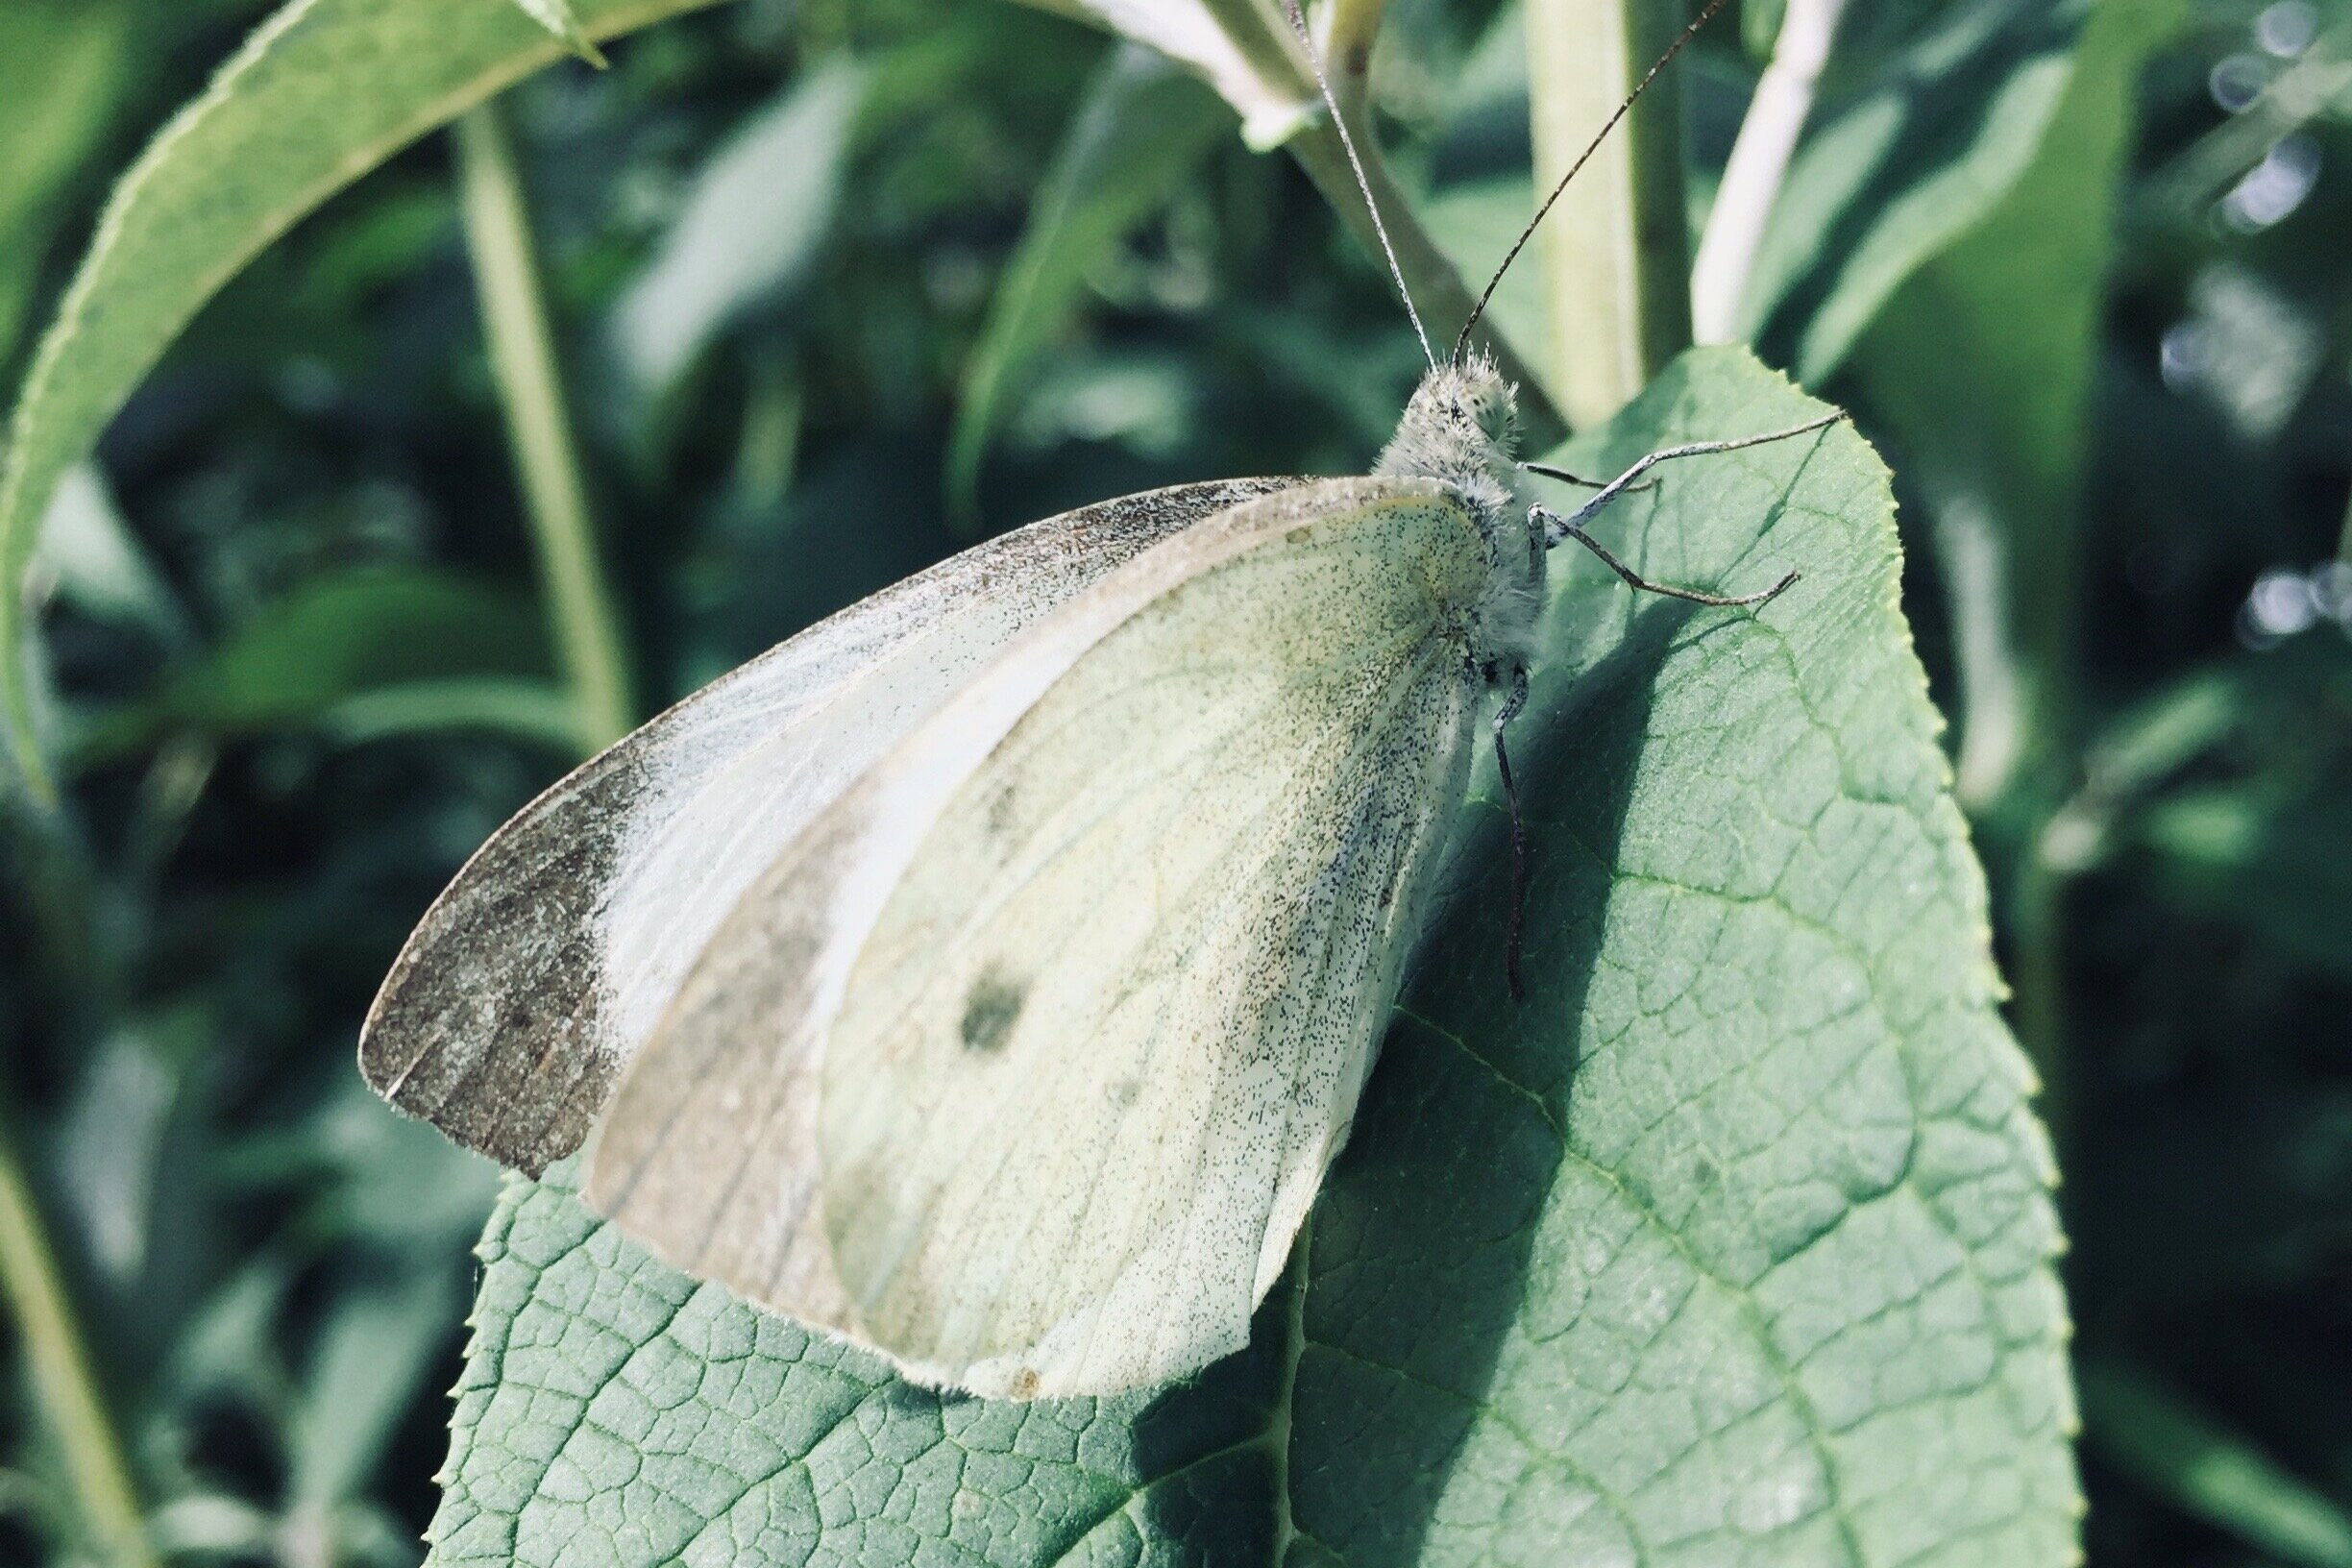 """Large White (Pieris brassicae) - Often referred to as the """"cabbage white"""" butterfly due to it's preference for laying eggs on cultivated brassicas. This large butterfly has very prominent black tips to the wings, which extend along both edges (like an """"L"""" shape"""